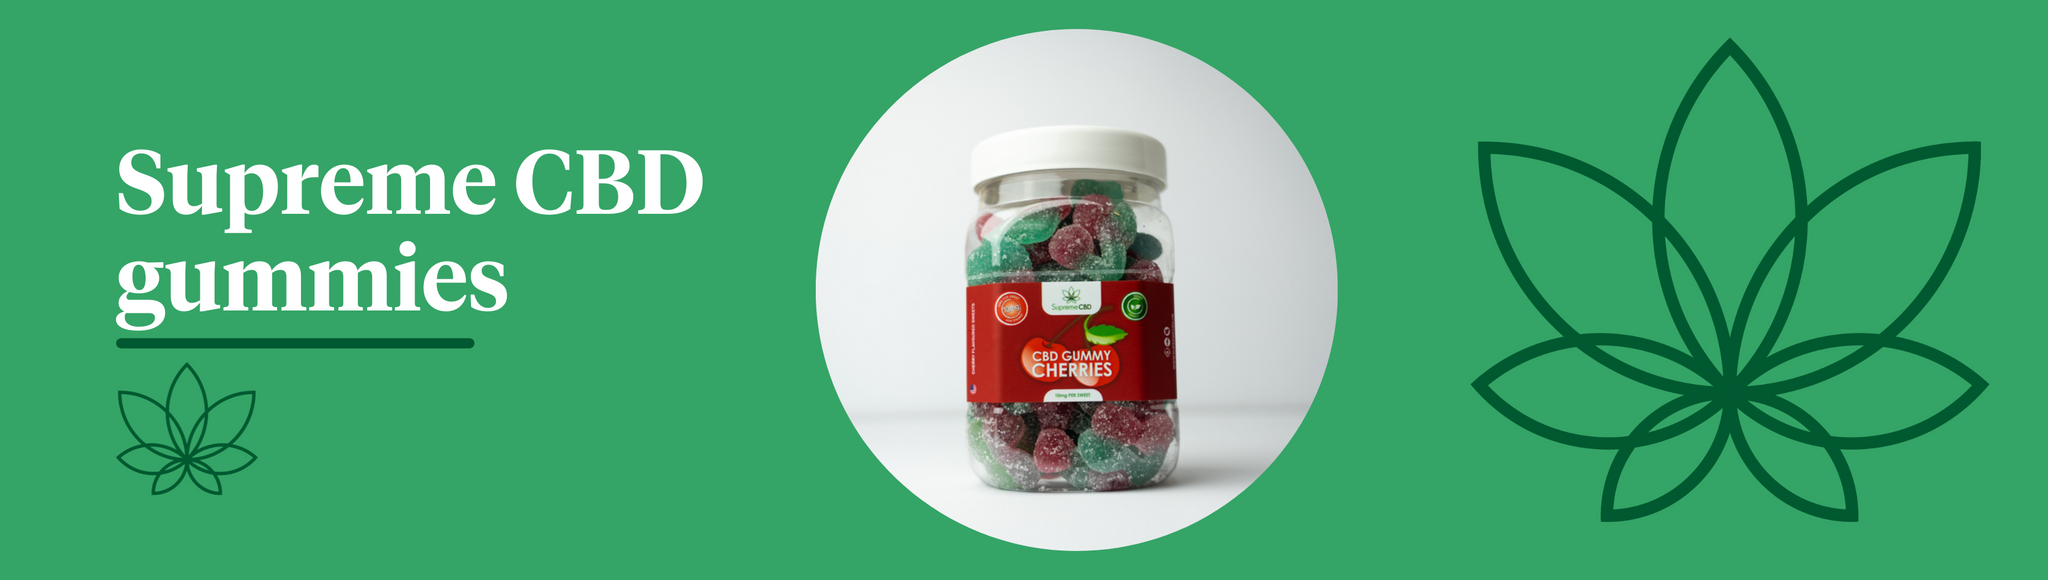 A green background with the Supreme CBD logo to the right with a bottle of Supreme CBD gummies in the centre.